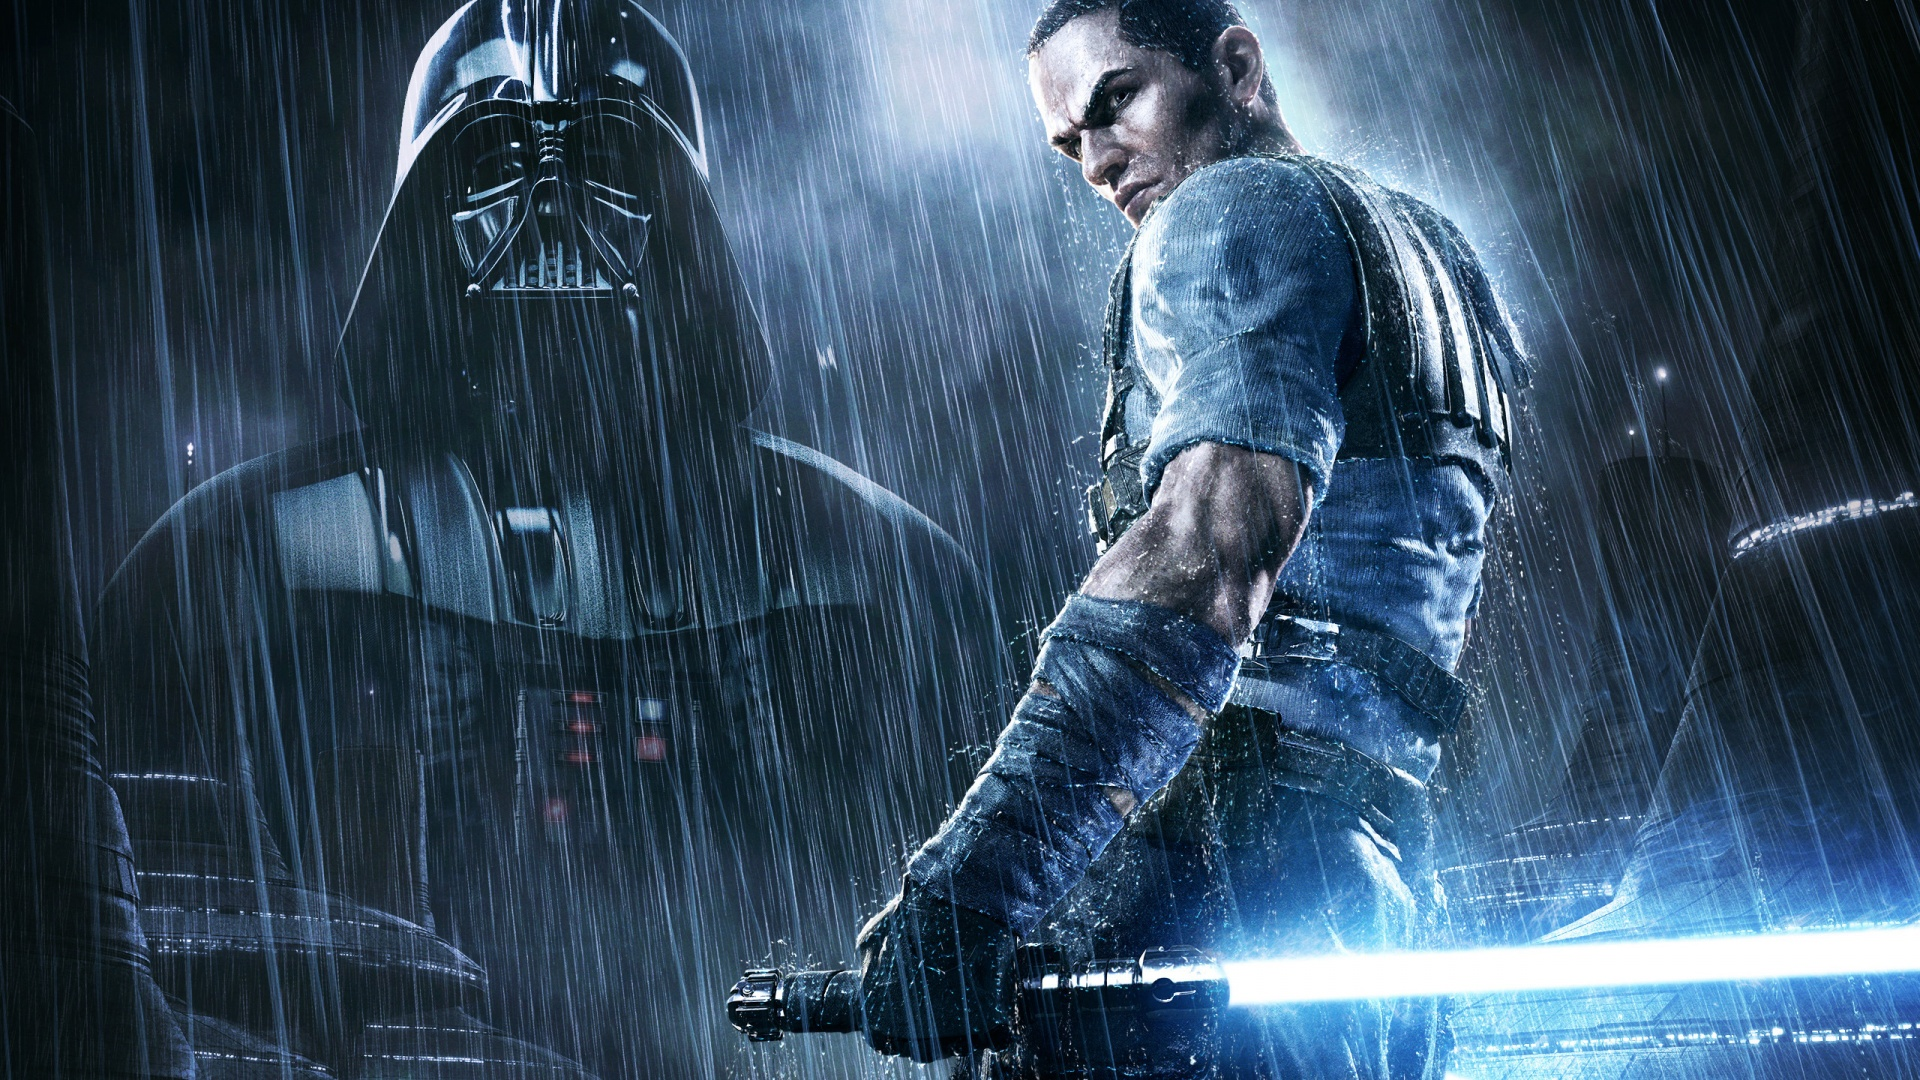 1920x1080 Star Wars Force Unleashed 2 Desktop Pc And Mac Wallpaper